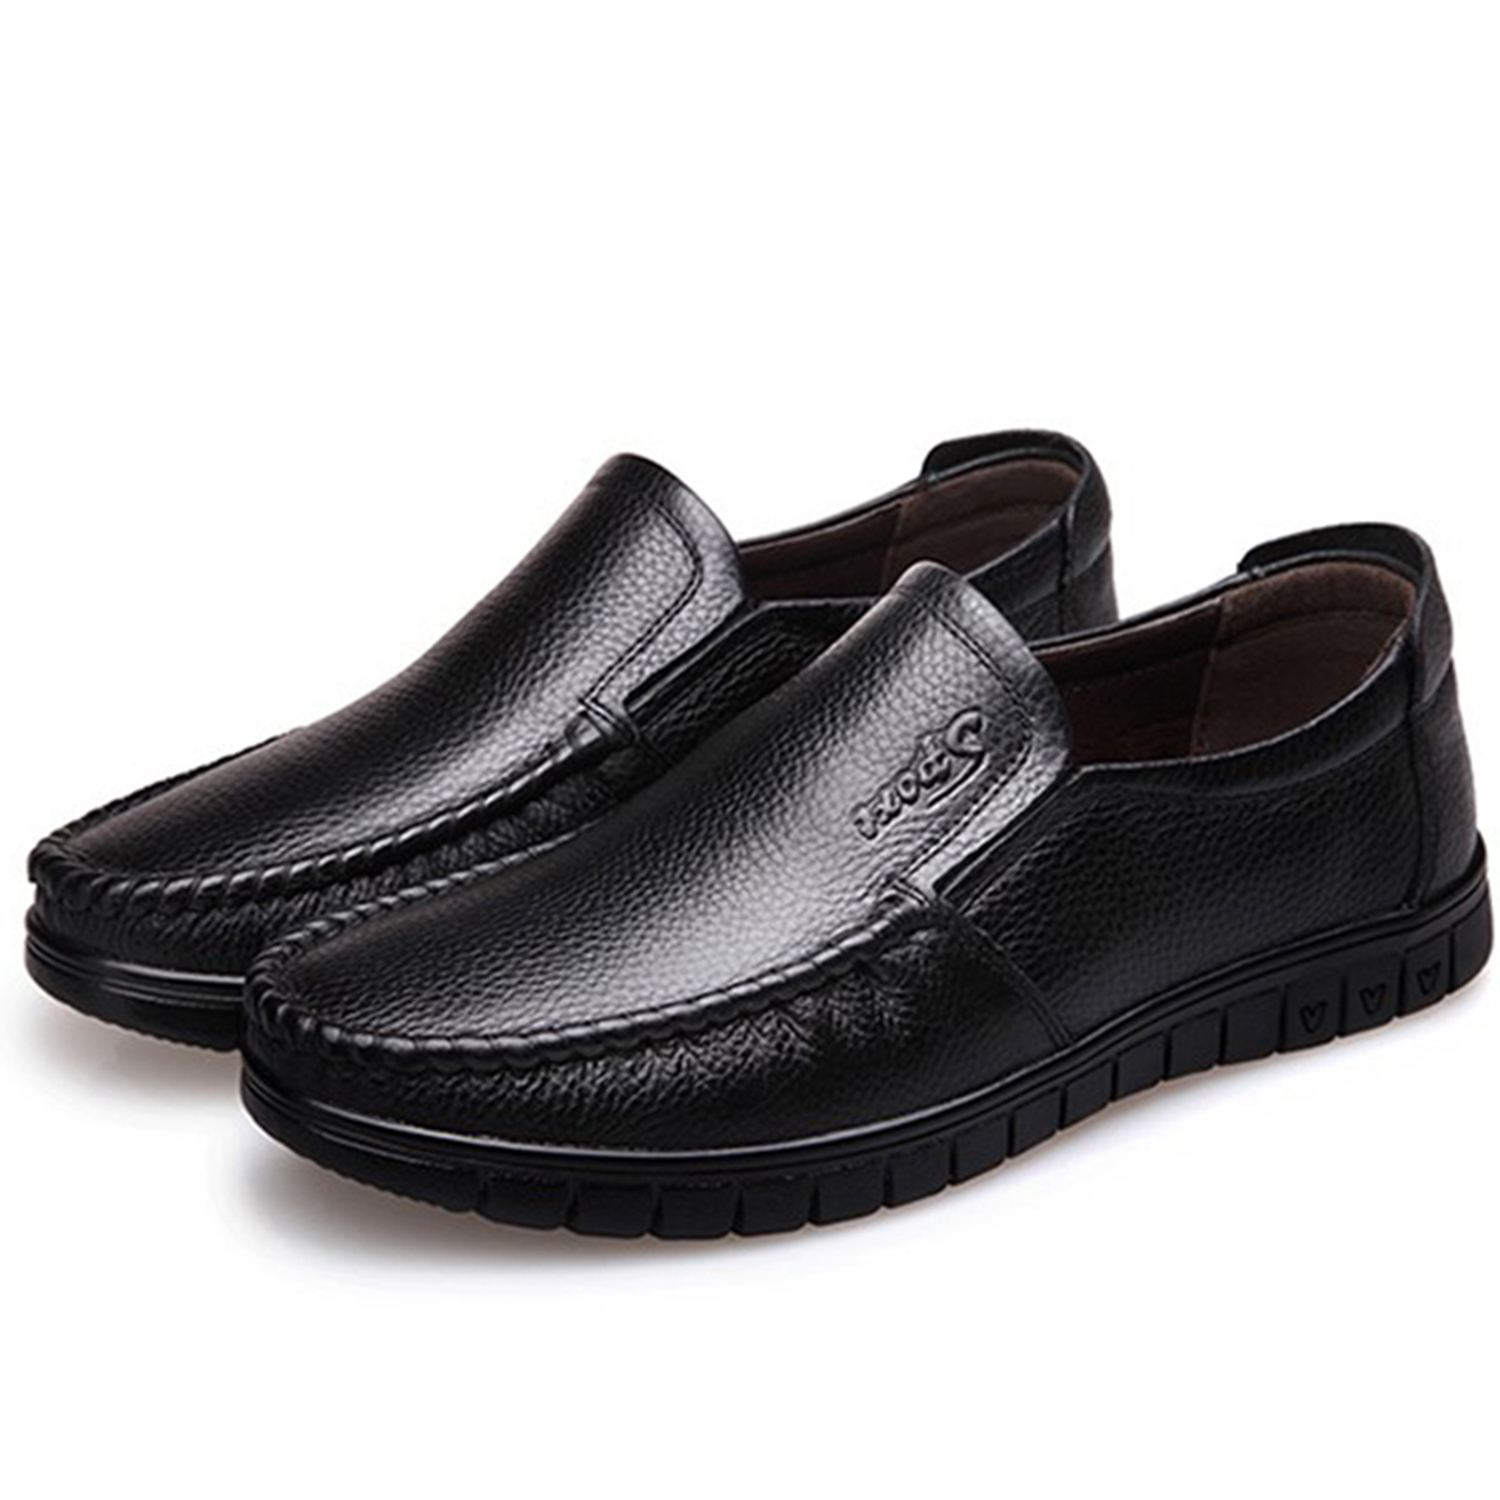 FGGS Men Soft Leather Loafers 2018 Spring Summer Male Casual Shoes Genuine Leather Moccasin Flat Breathable Driving ShoeFGGS Men Soft Leather Loafers 2018 Spring Summer Male Casual Shoes Genuine Leather Moccasin Flat Breathable Driving Shoe